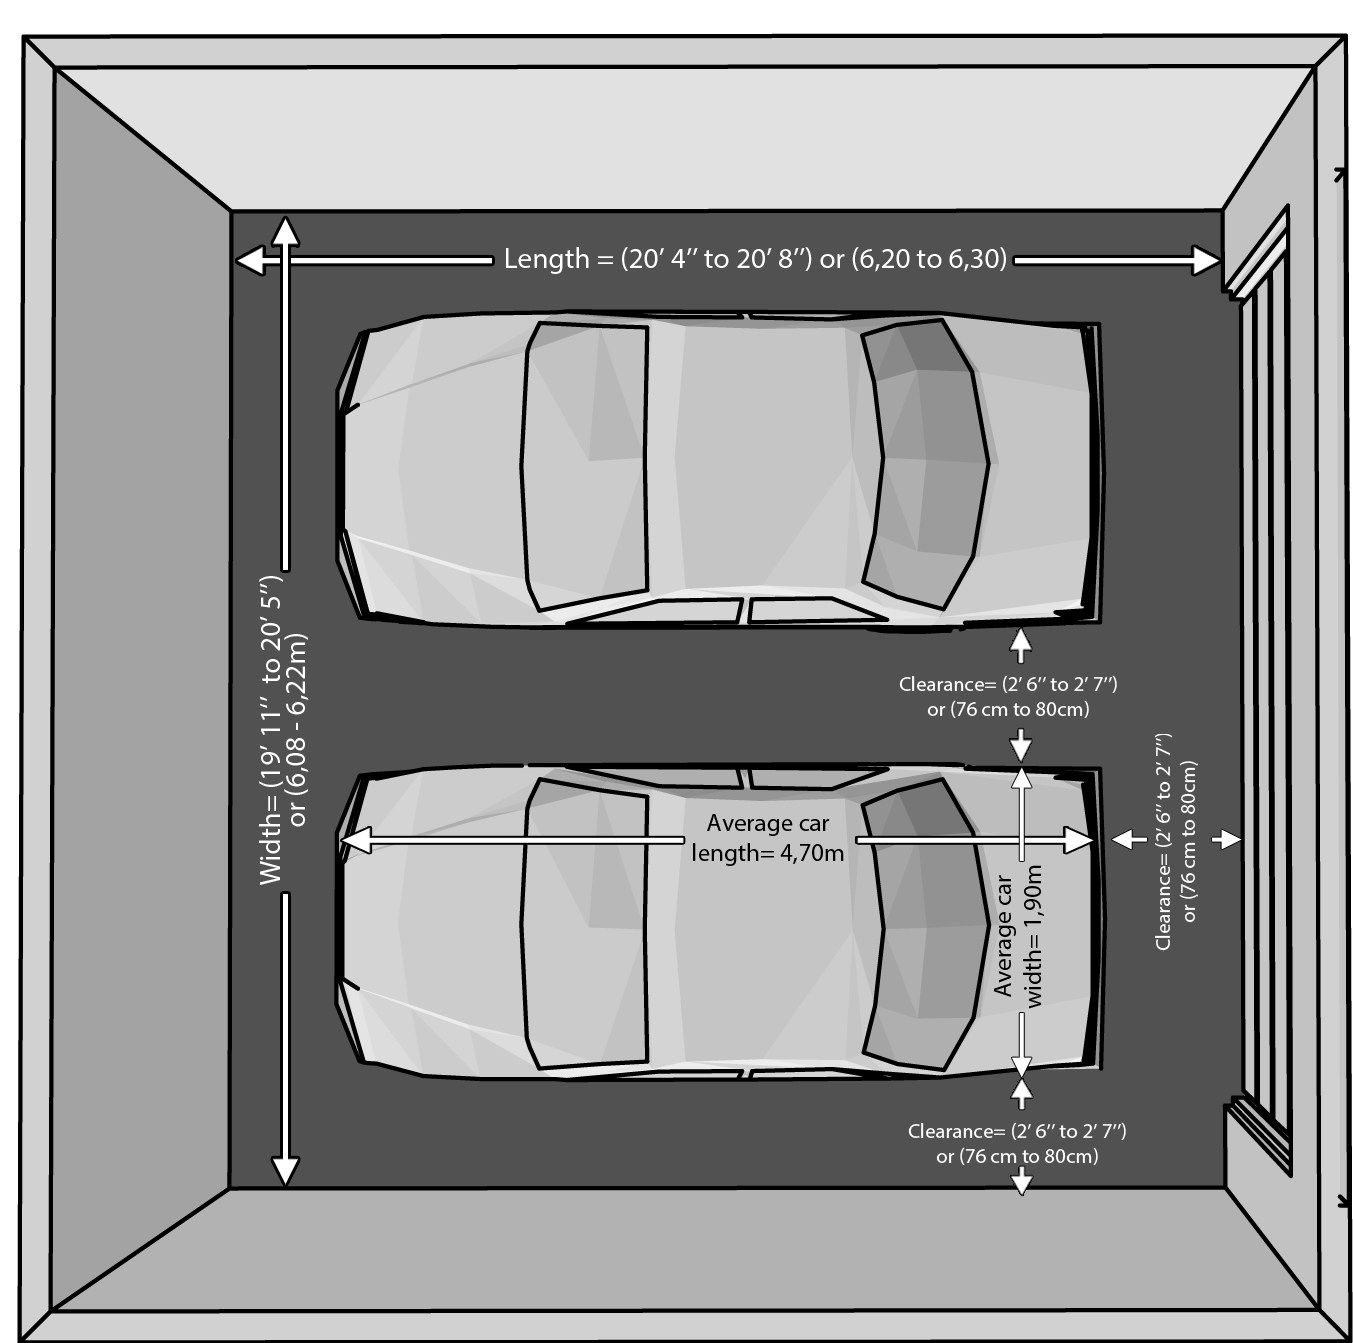 Garage Size Cars Garage Dimensions Cars Garage Contemporary Floor Plan Steven Corley Randel Garage Dimensions Garage Door Dimensions Standard Garage Door Sizes